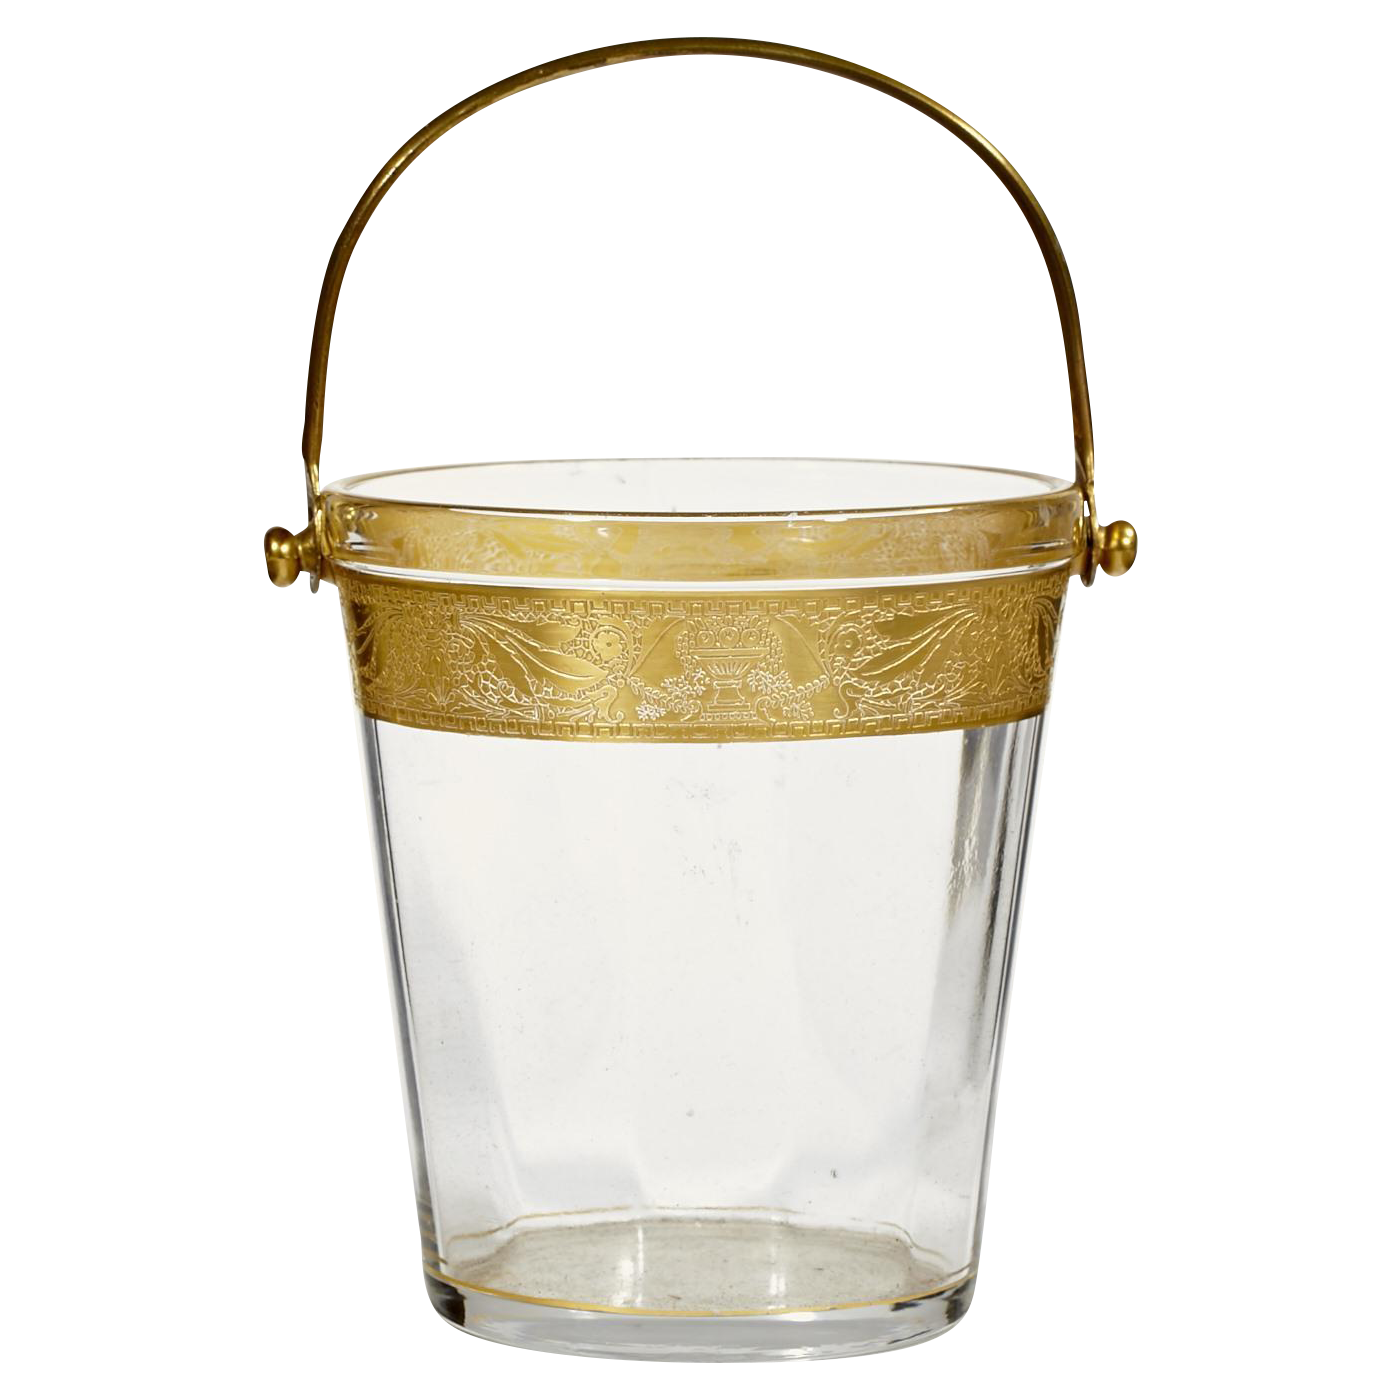 1930's Gilt-Accented Glass Ice Bucket on Chairish.com